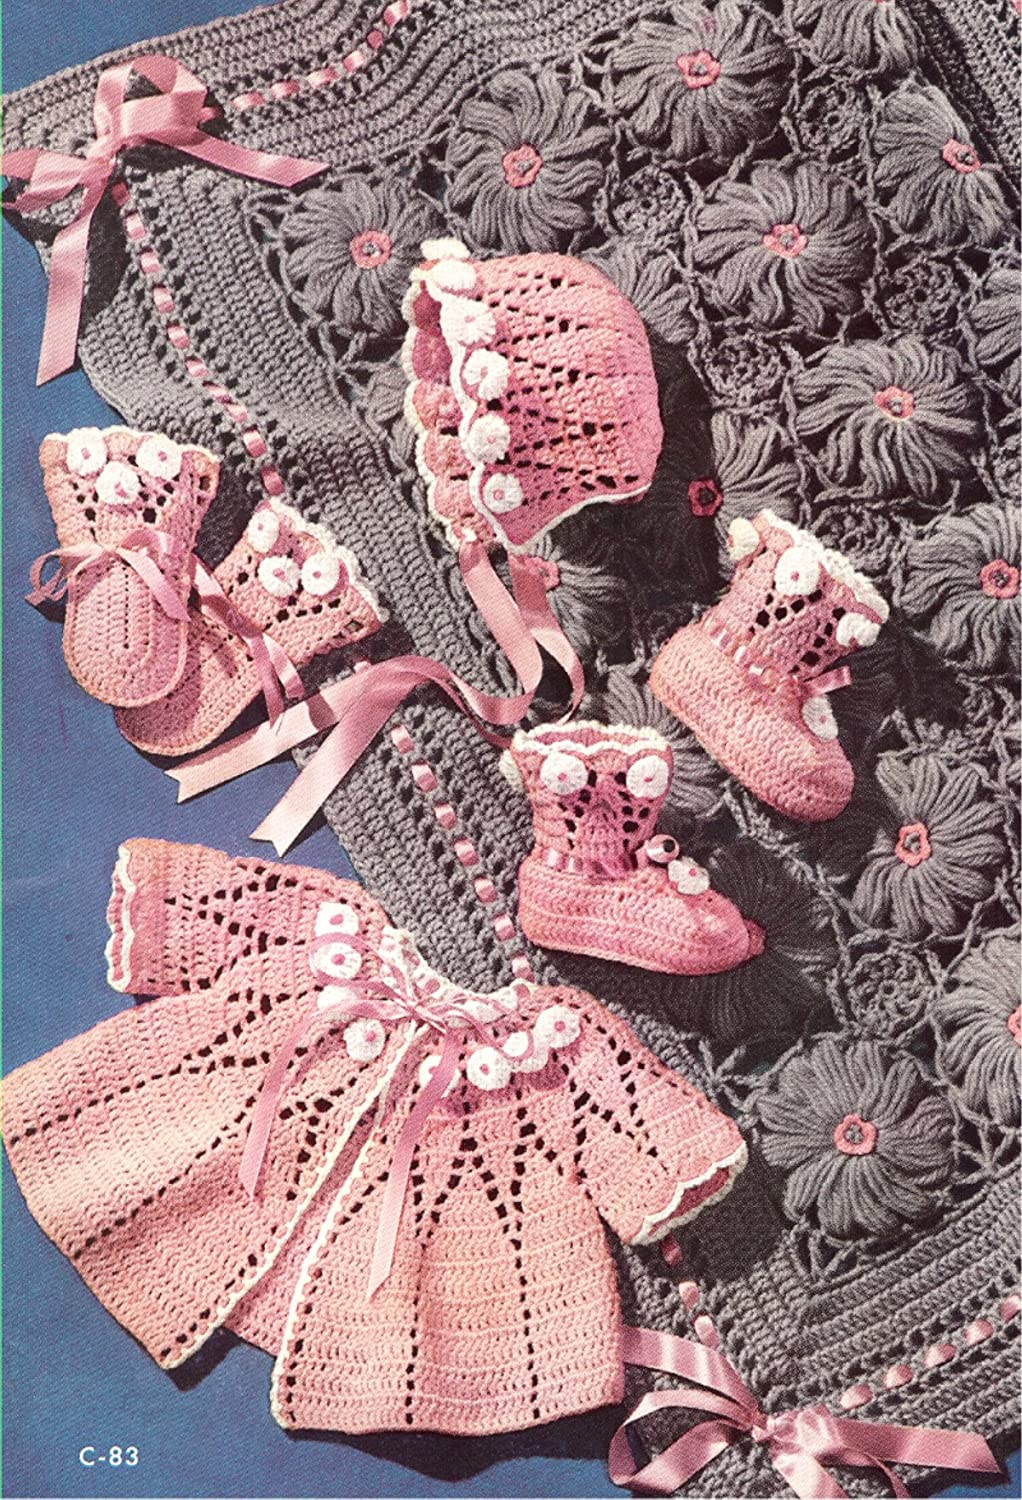 Vintage Crochet PATTERN to make - Baby Sweater Cap Booties Blanket Set. NOT a finished item, this is a pattern and/or instructions to make the item only.